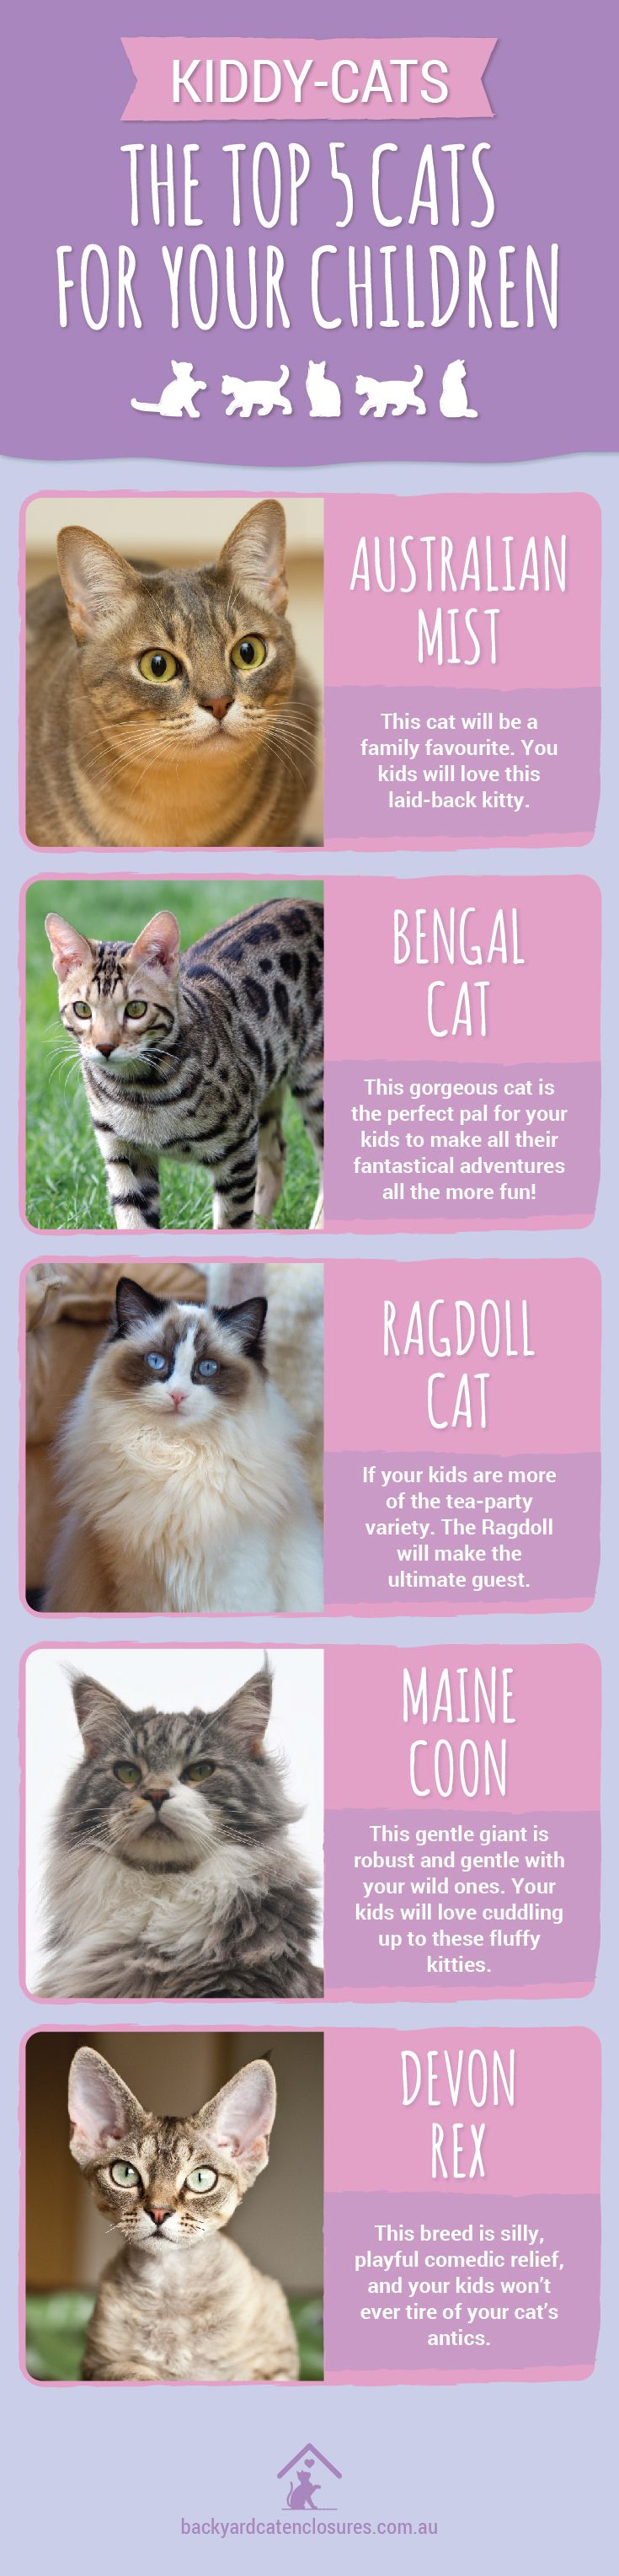 13 best AUSTRALIAN MIST CAT BREED images on Pinterest